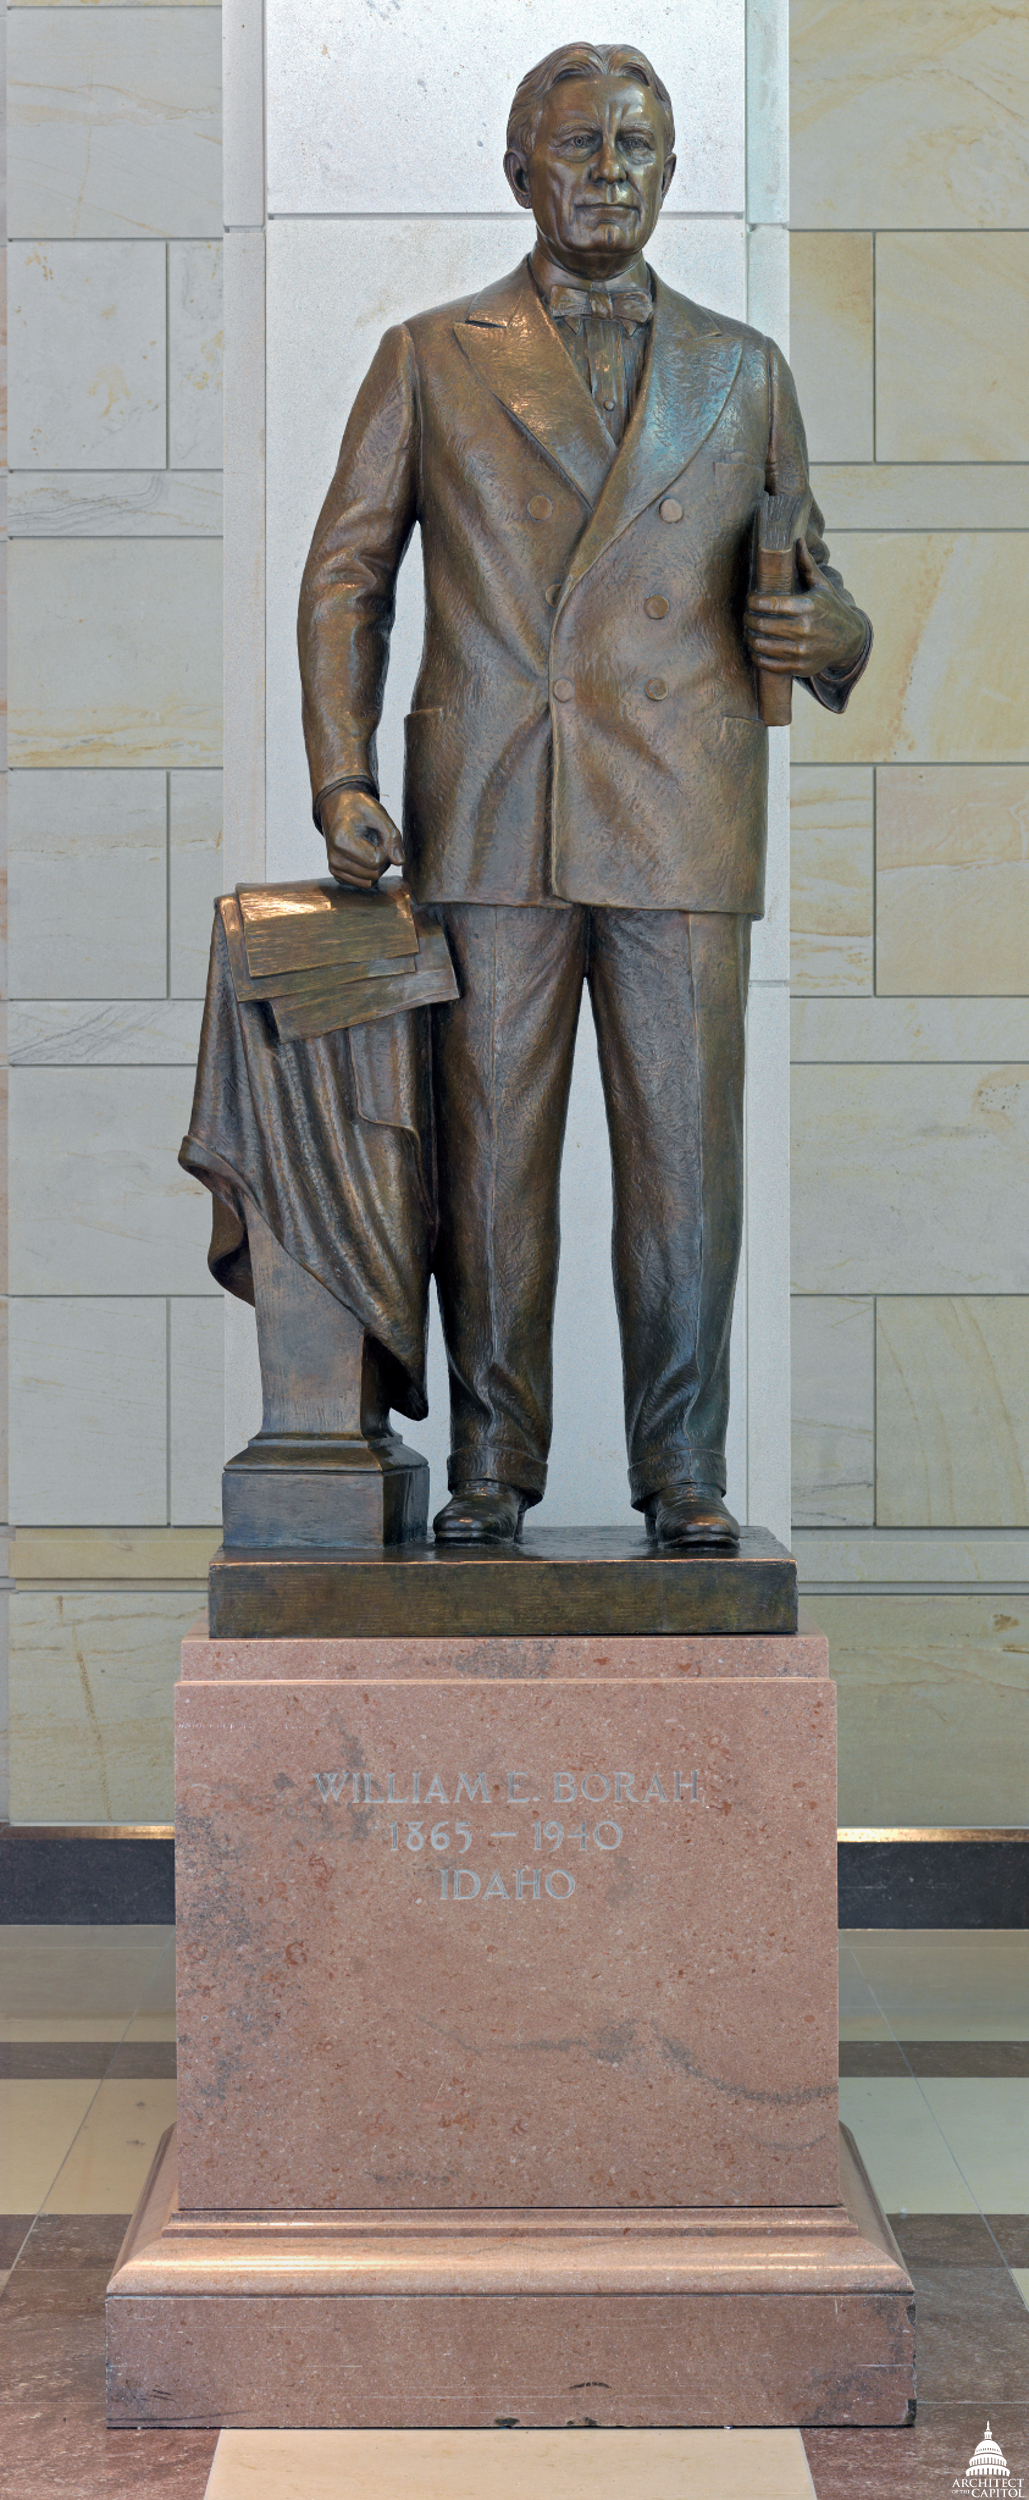 This statue of Senator William Edgar Borah was given to the National Statuary Hall Collection by Idaho in 1947.